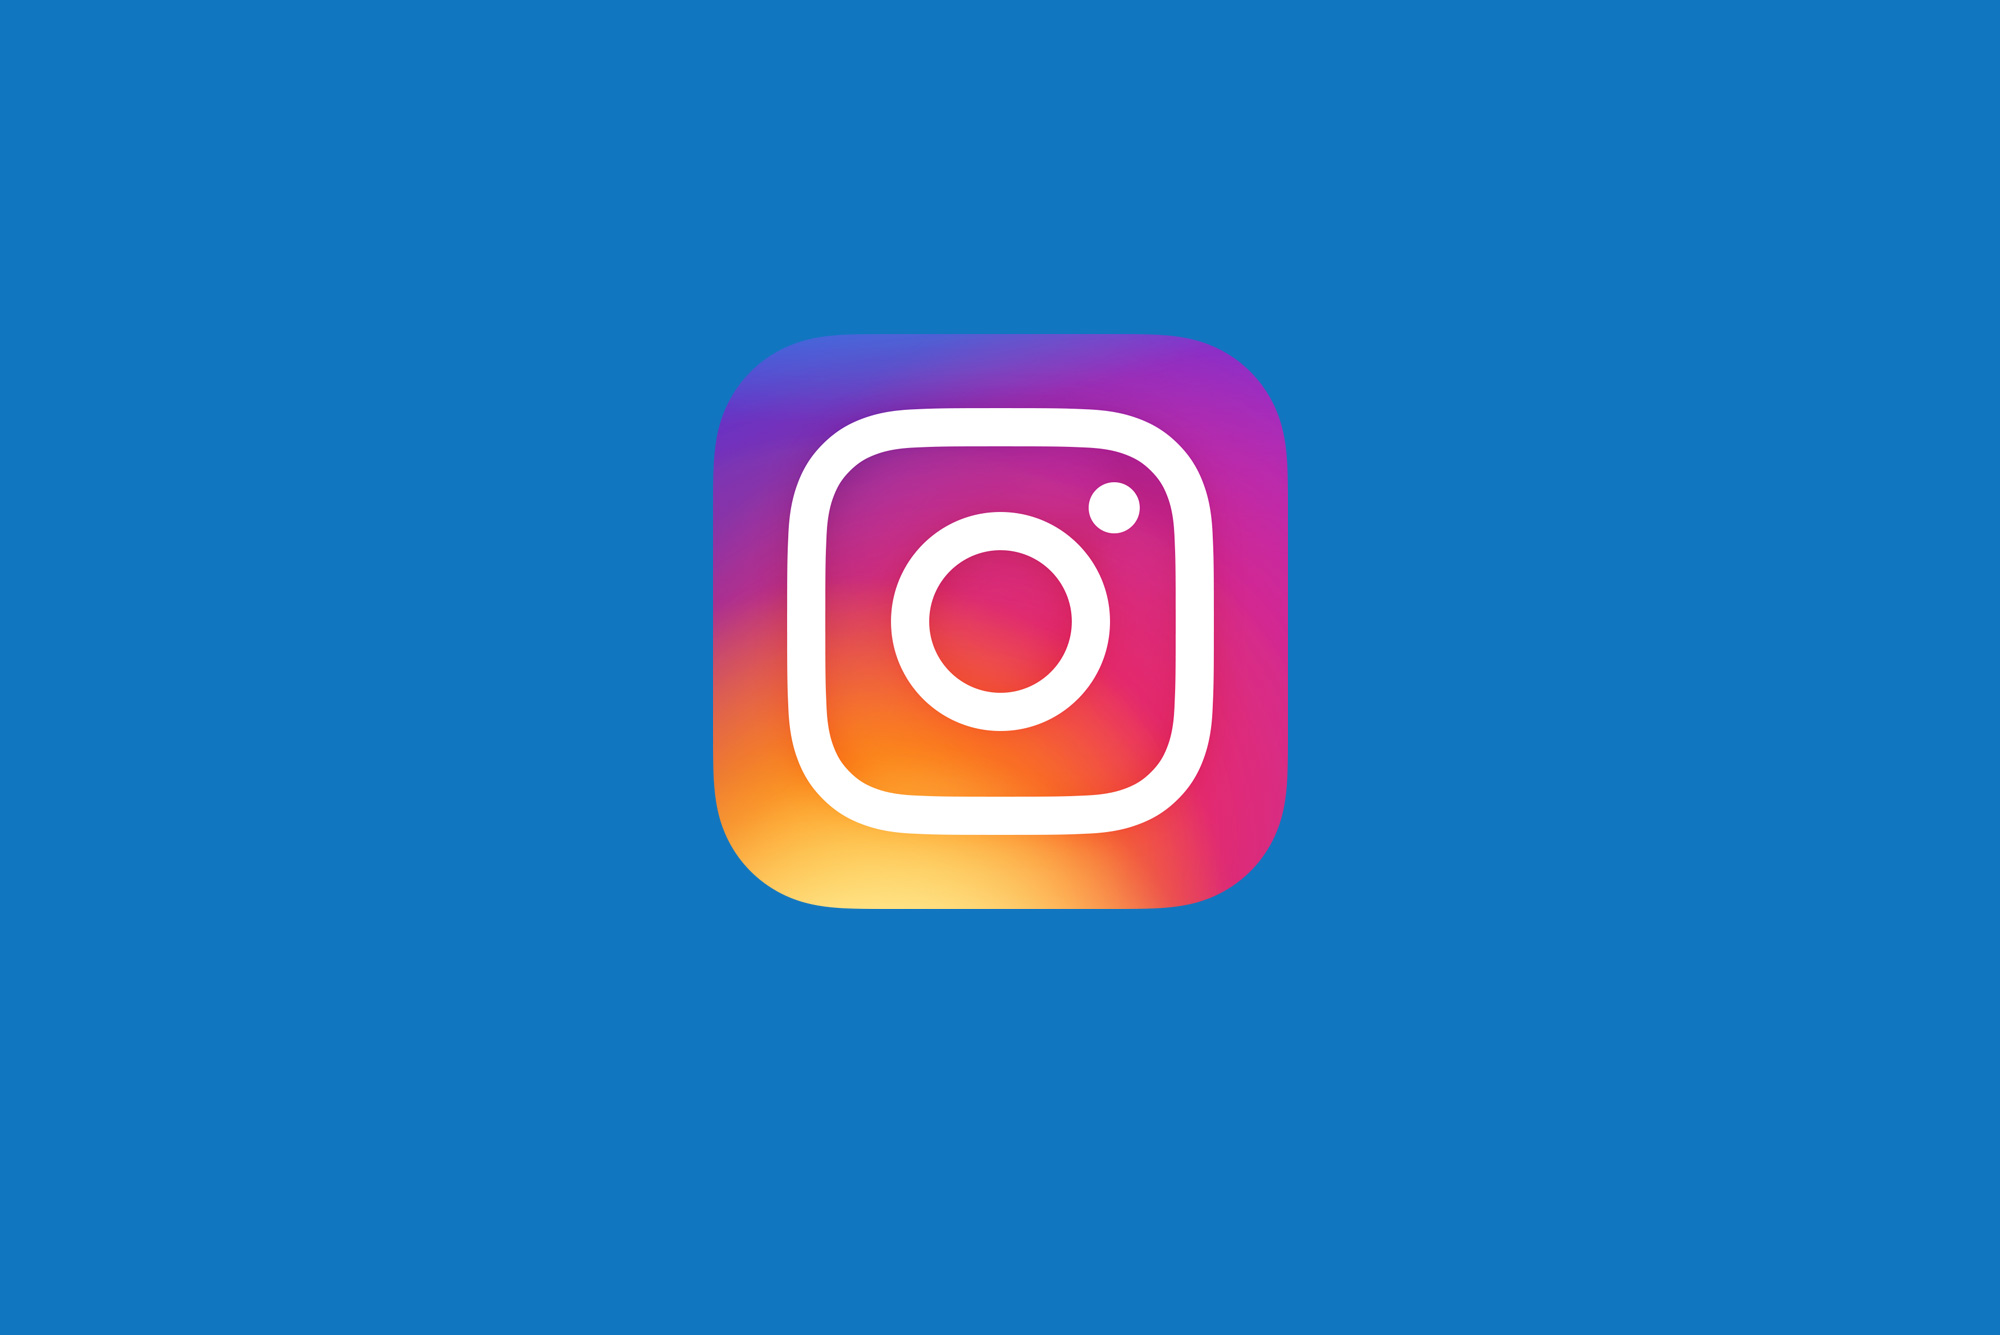 Instagram logo on blue background - How to use Instagram for business